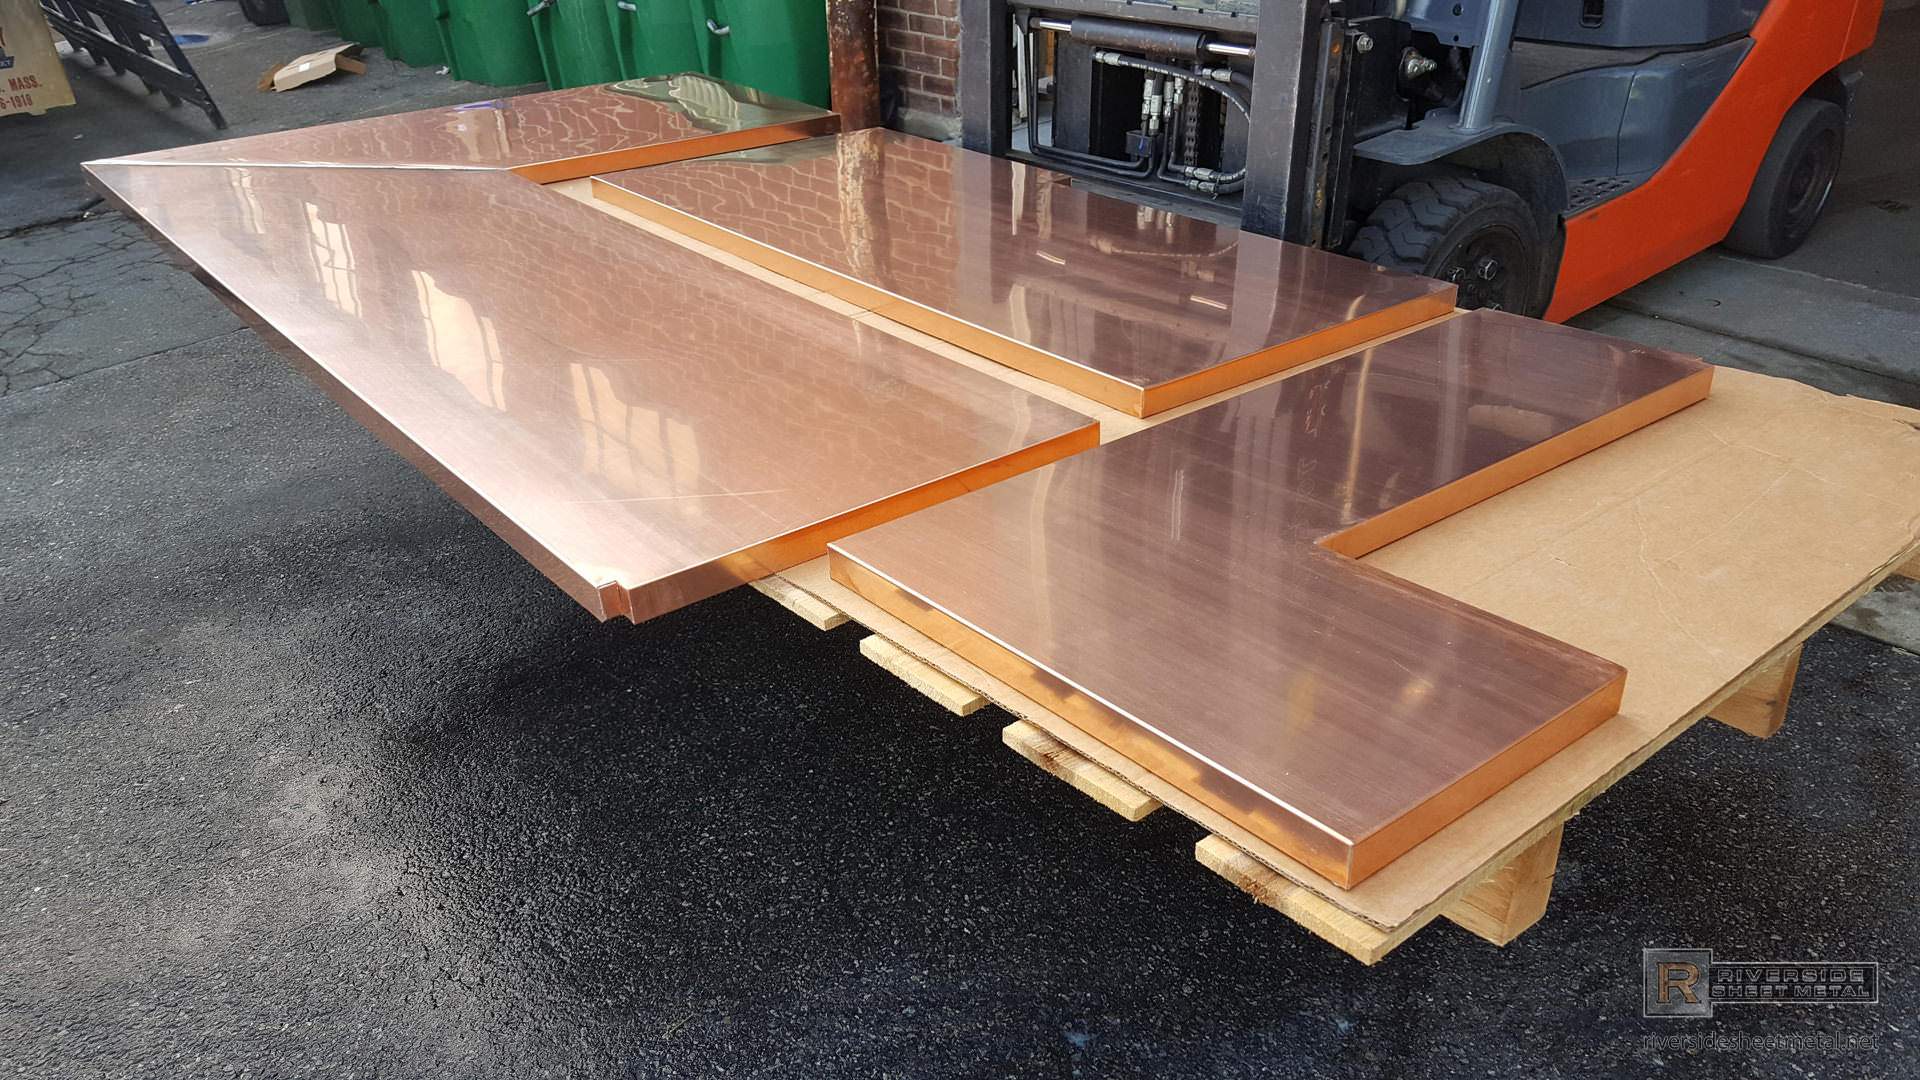 Natural Finish Copper Top With Soldered Seams